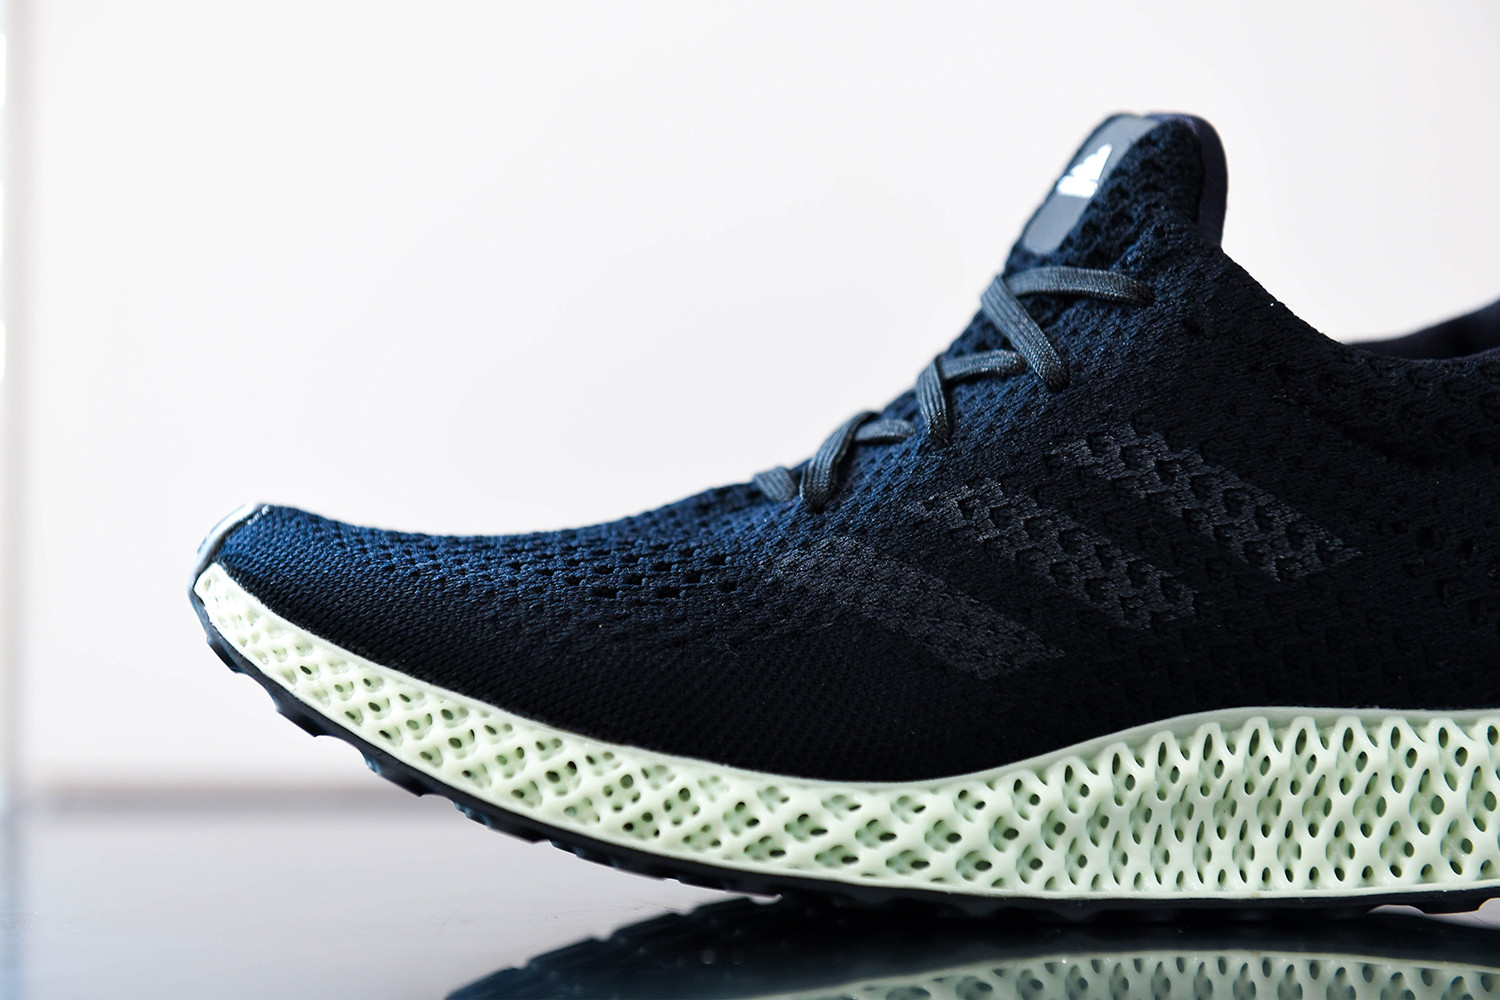 reputable site 0b175 0c504 Exploring the adidas 4D Futurecraft | HYPEBEAST